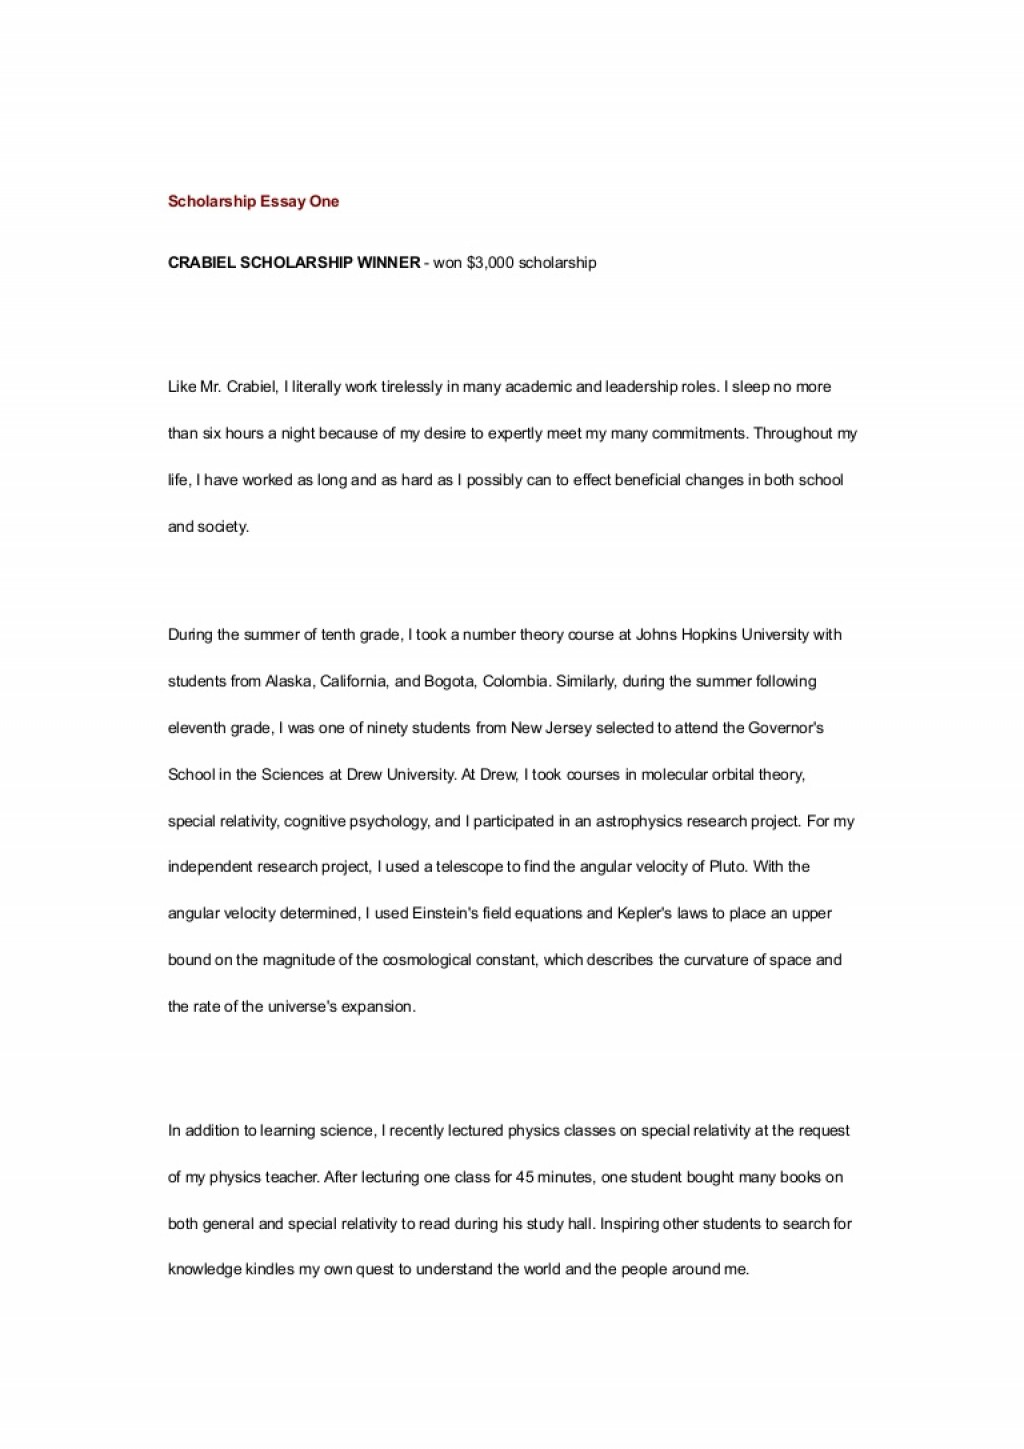 016 Leadership Essays For College Essay Example Scholarshipessayone Phpapp01 Thumbnail Beautiful Examples Of Large